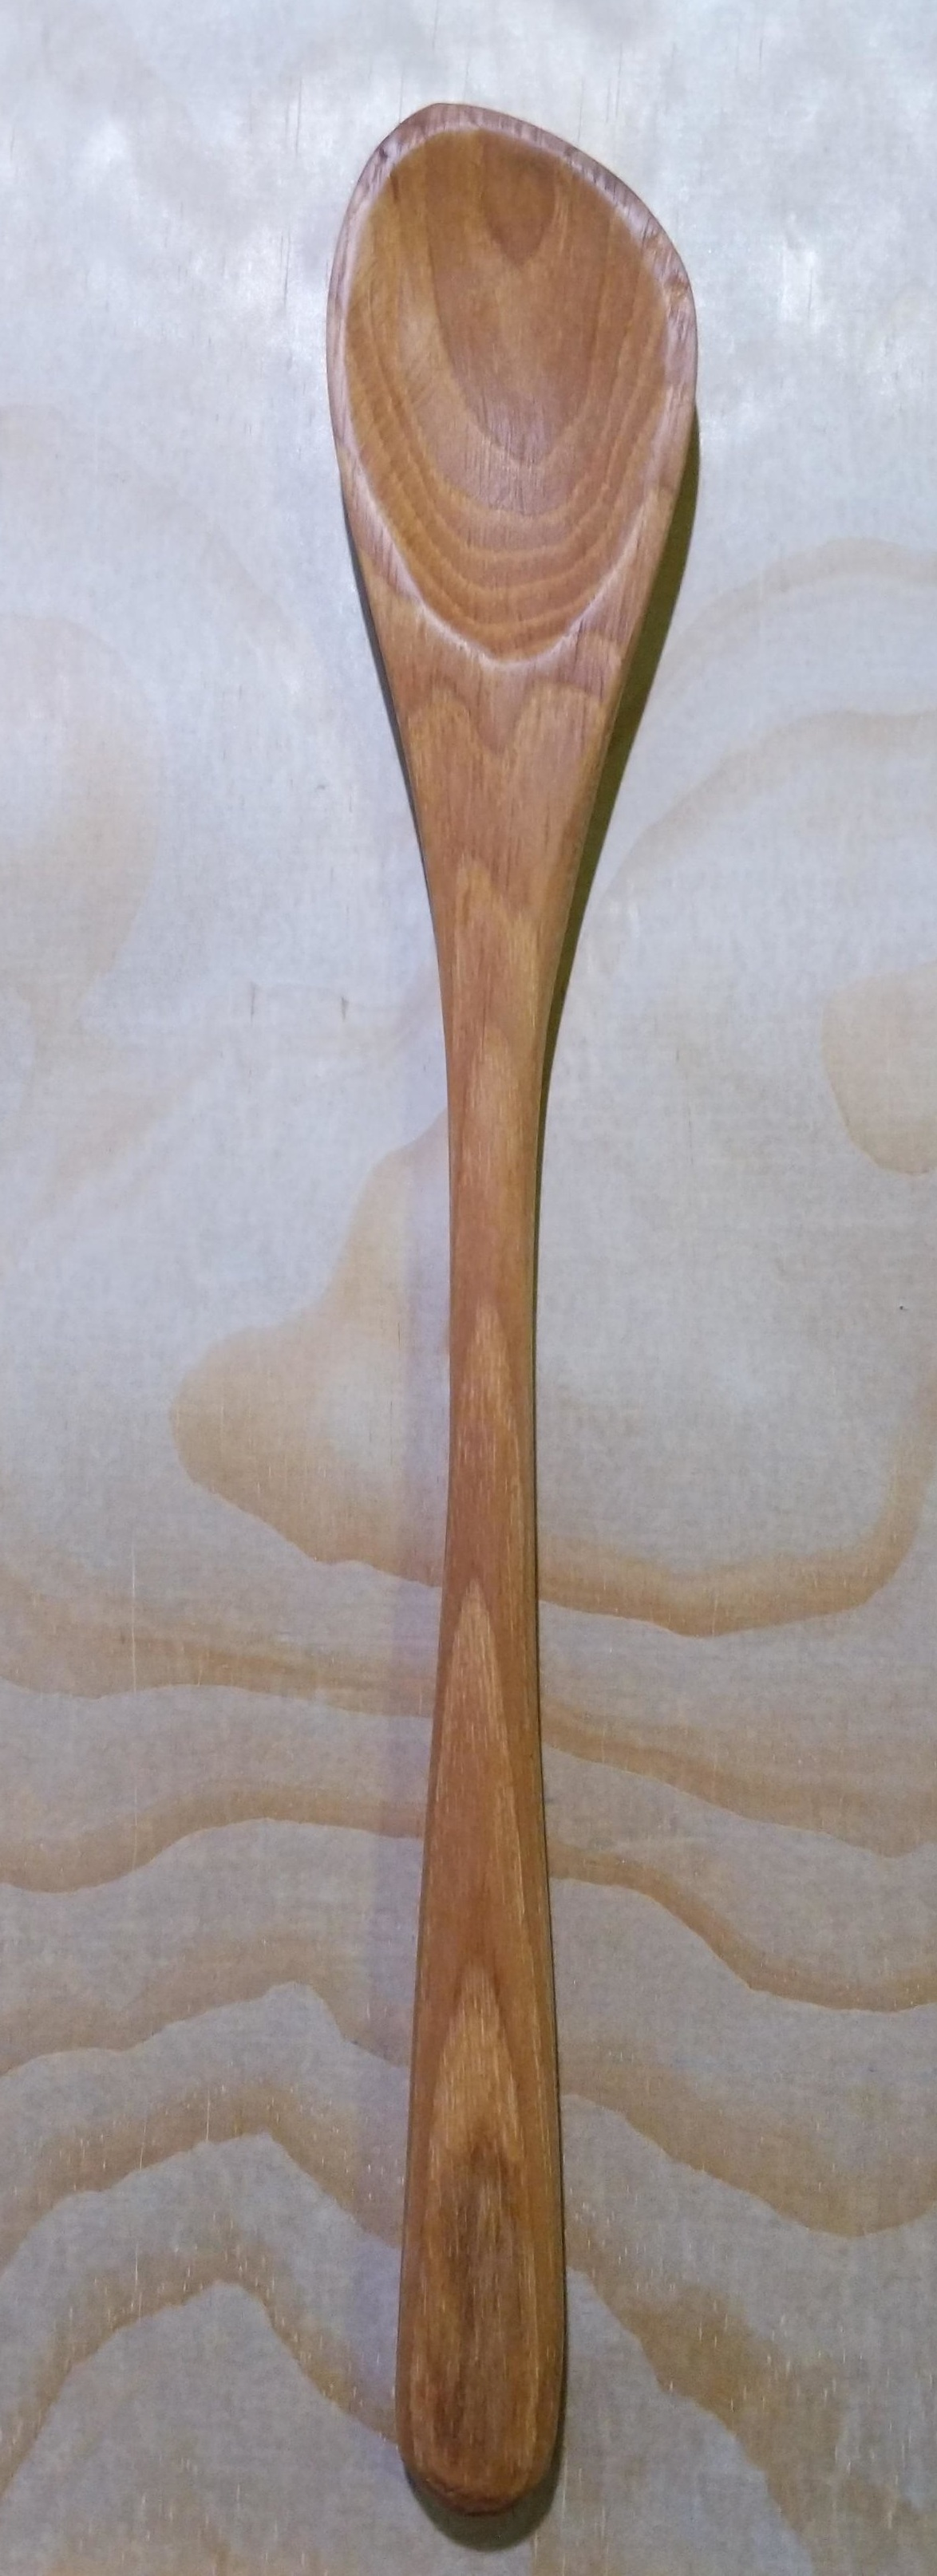 "Curved spoon, hickory, left handed, 12.5"" long"